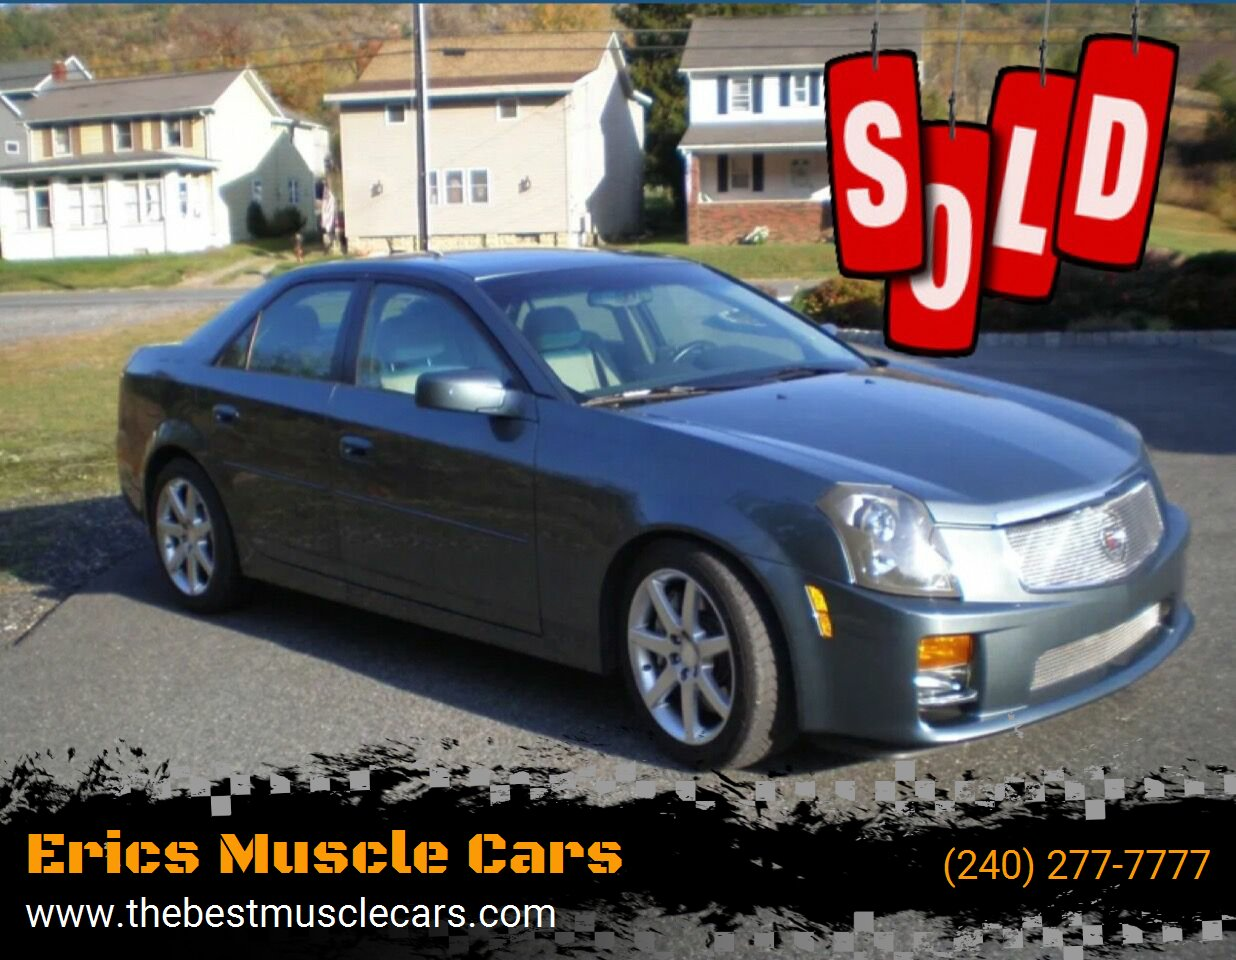 2005 Cadillac CTS-V SOLD SOLD SOLD